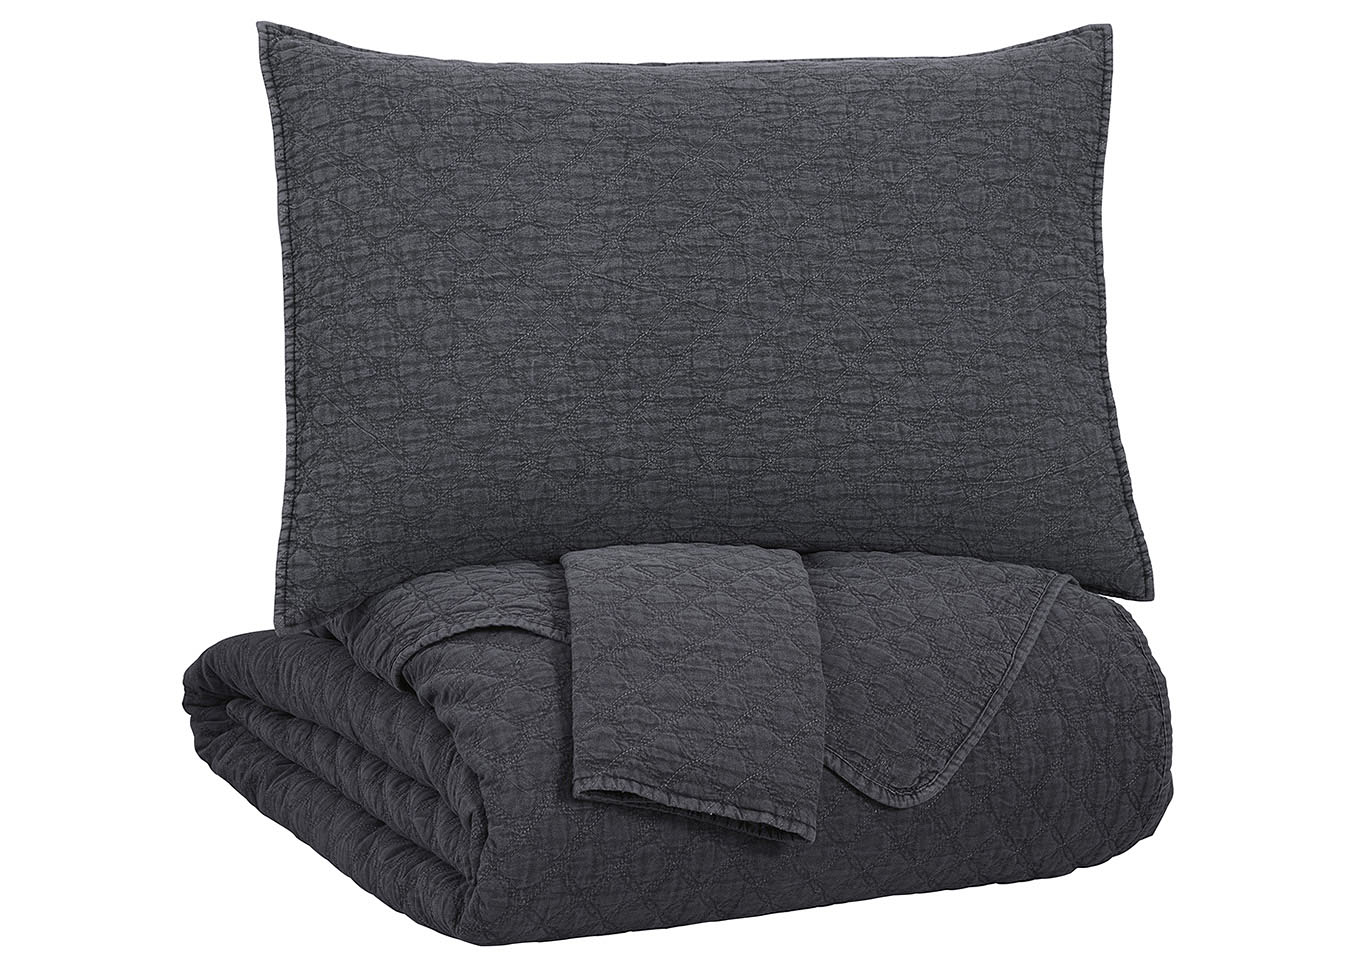 Ryter Charcoal Queen Coverlet Set,Signature Design By Ashley